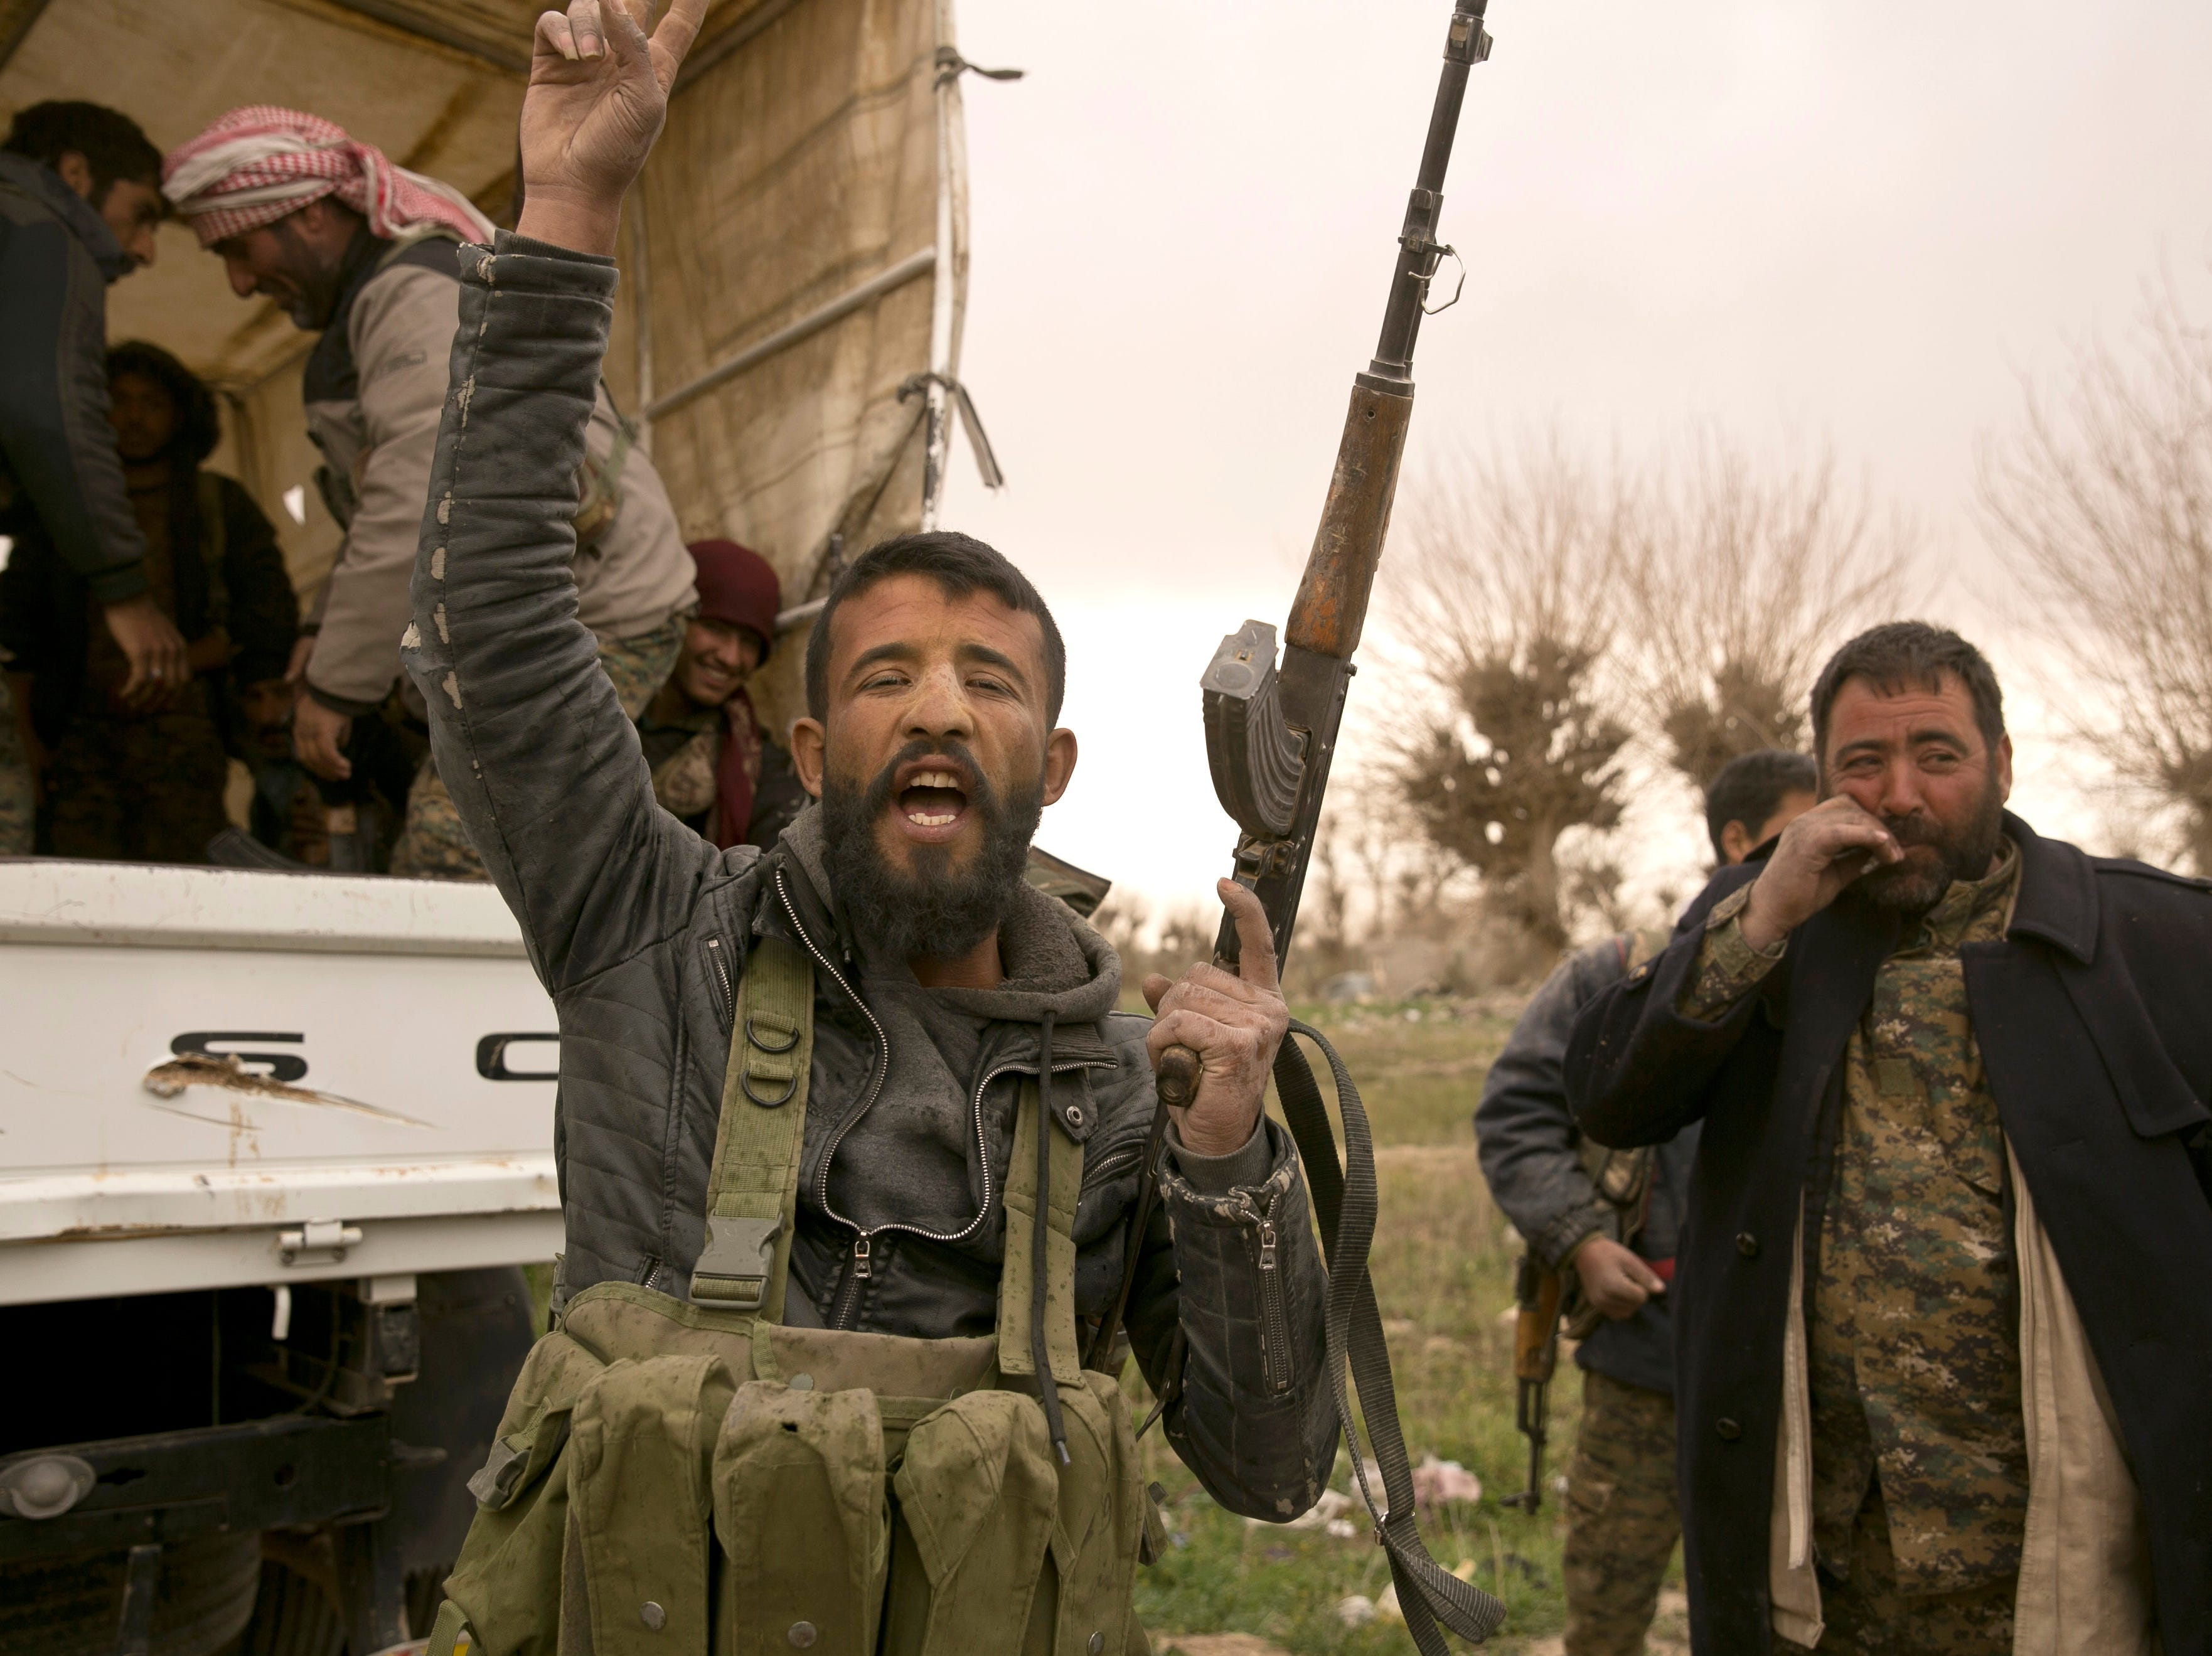 A U.S.-backed Syrian Democratic Forces (SDF) fighter chants slogans before heading to the front line to fight Islamic State militants in their last stronghold of Baghouz, Syria, Thursday, March 14, 2019.